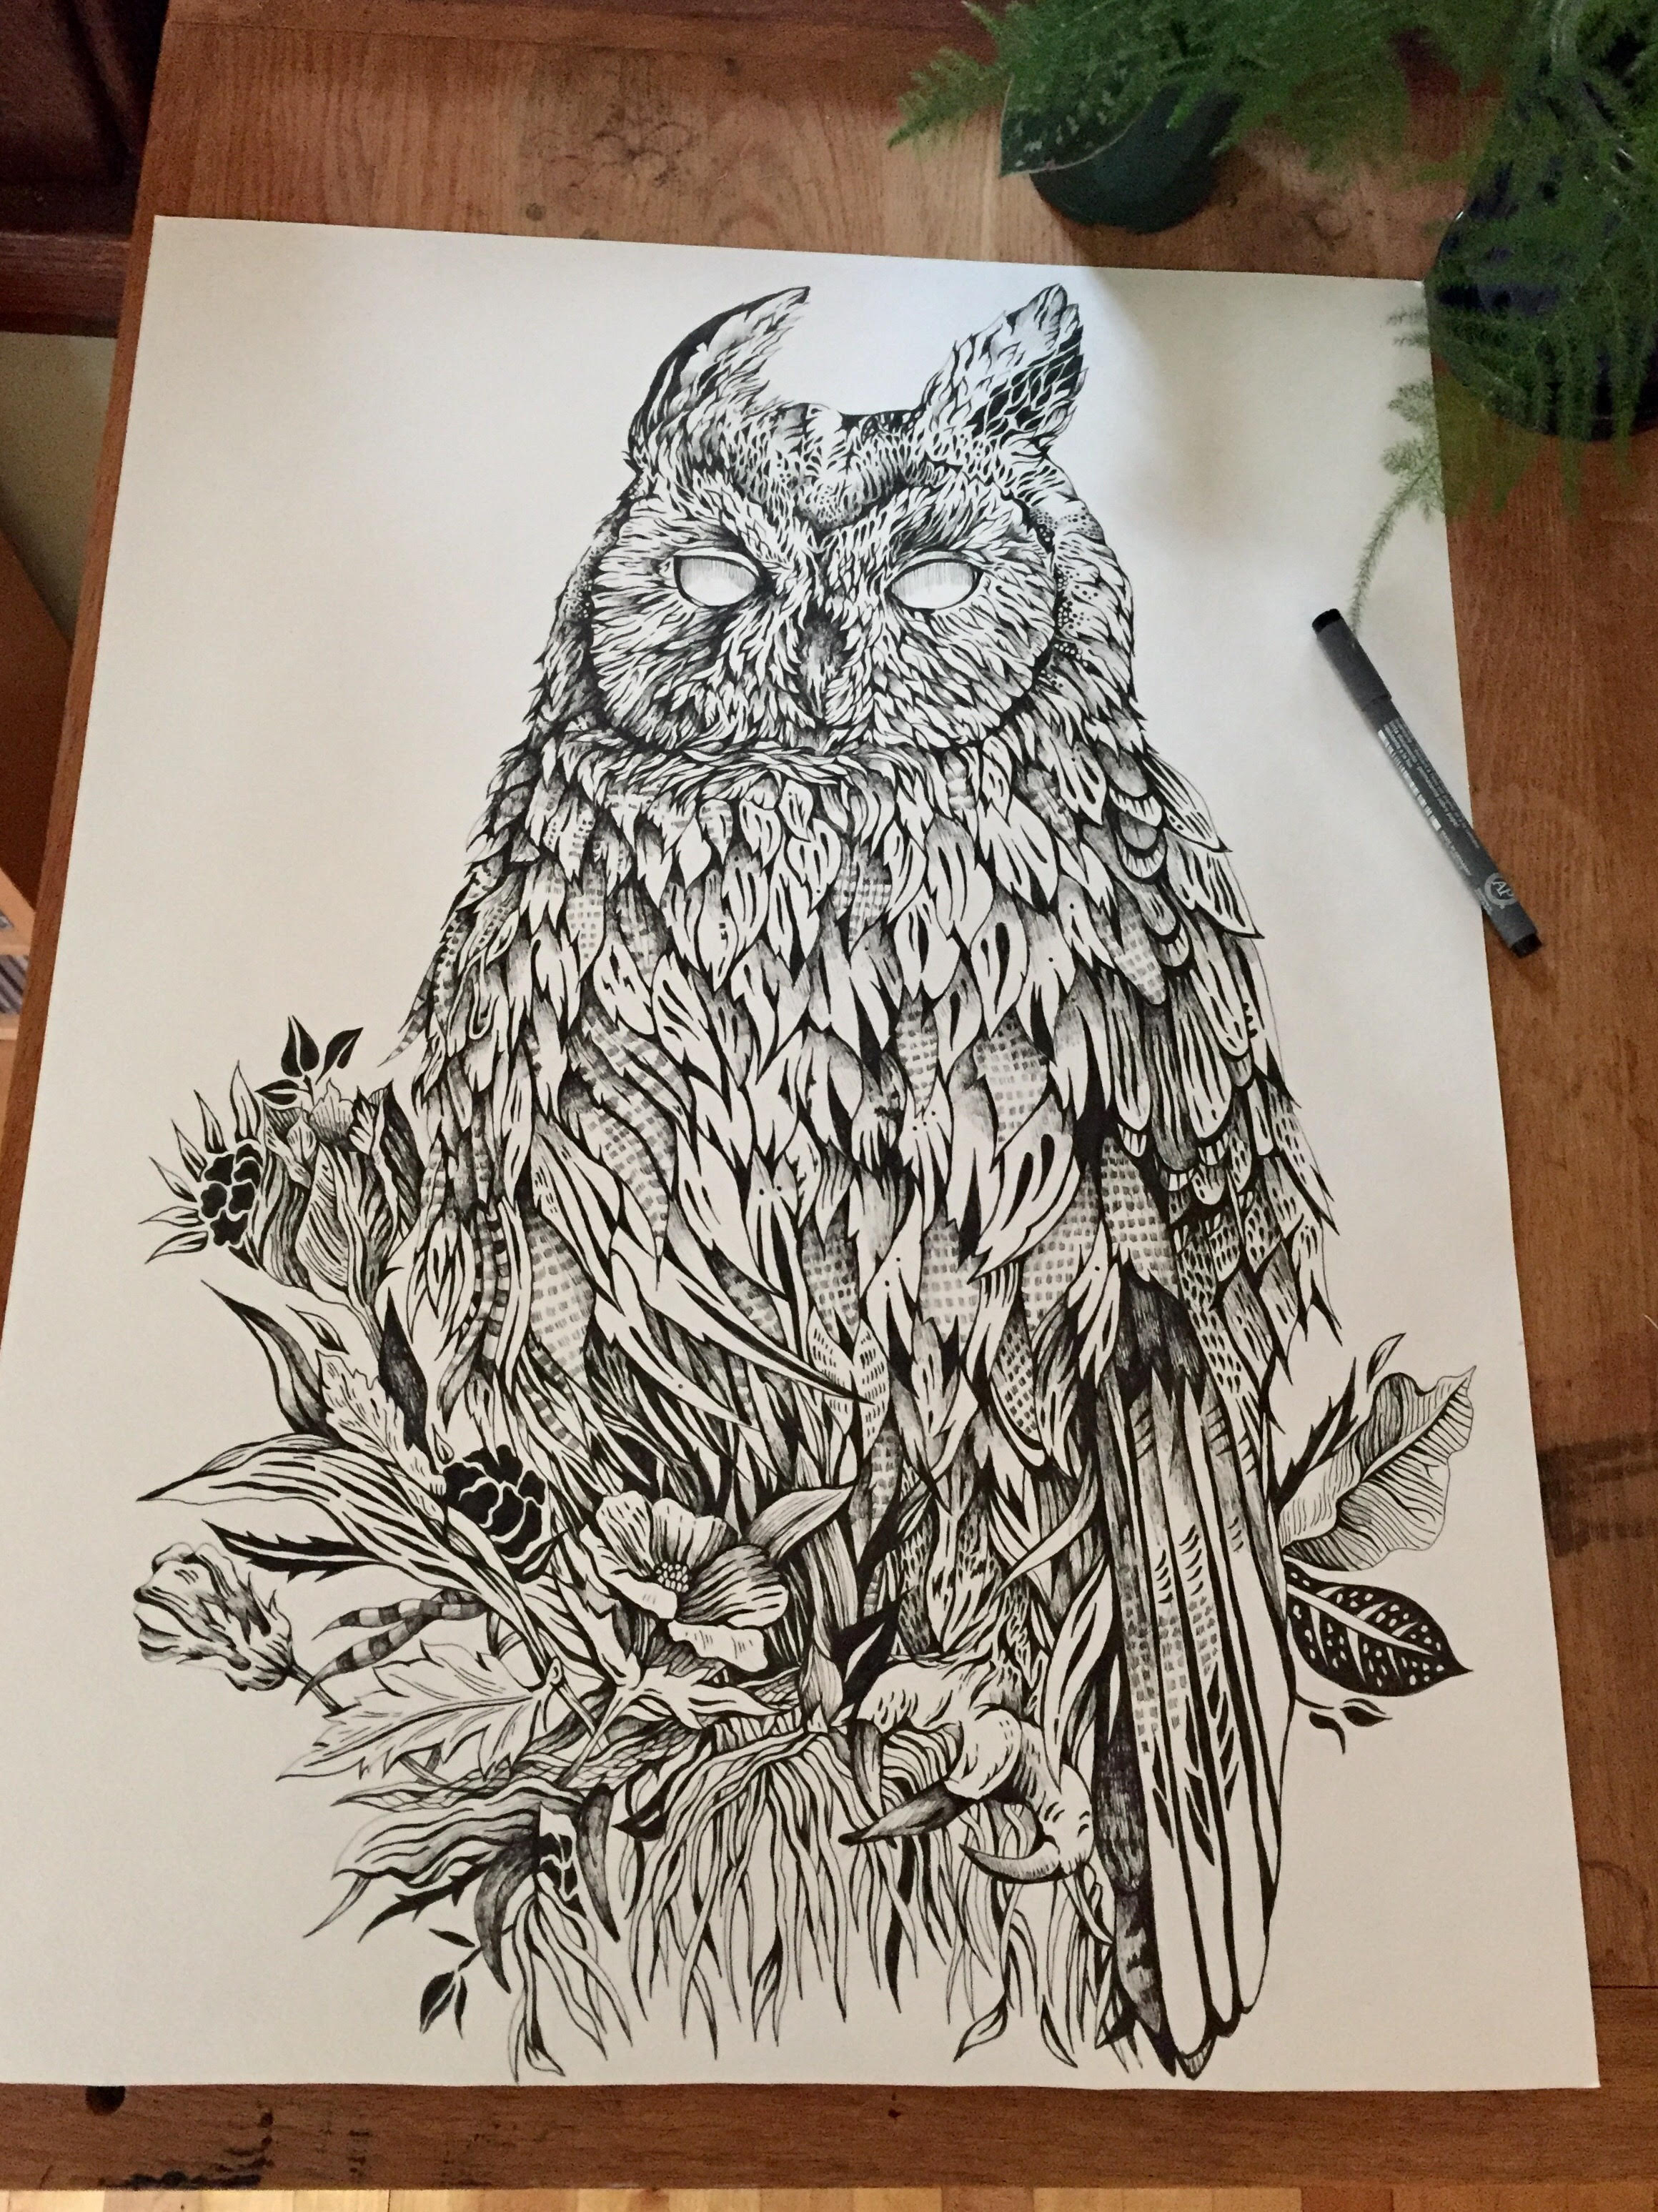 A Northern Long Eared Owl I recently finished. It was fun to play around with a lot of textures and patterns in this one.